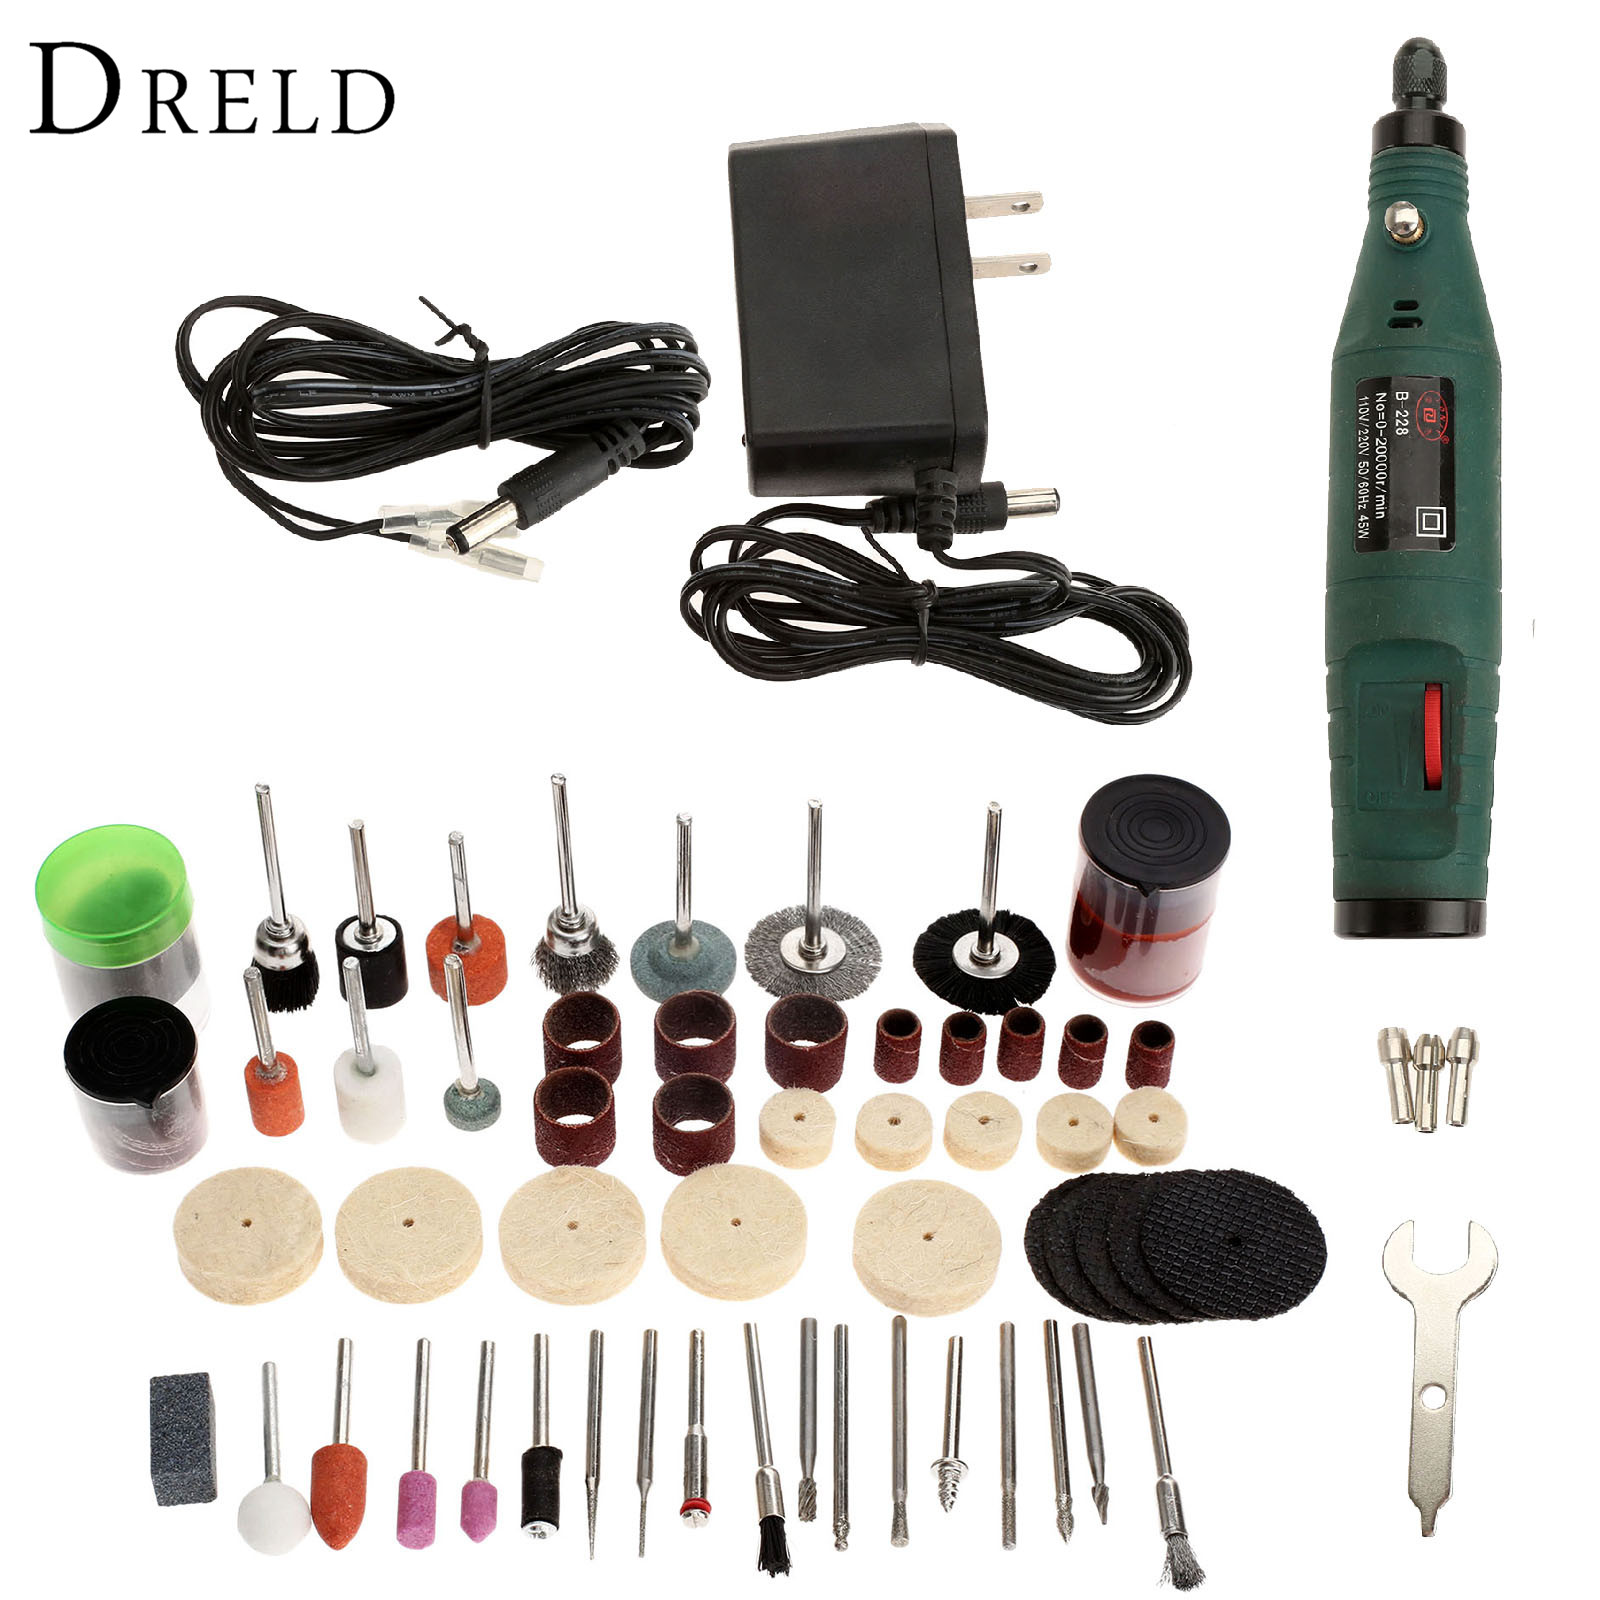 DRELD 12V Mini Grinding Machine Electric Drill Die Grinder Electric Tool+100Pcs Grinding Polishing Sanding Tools for Rotary Tool  цены